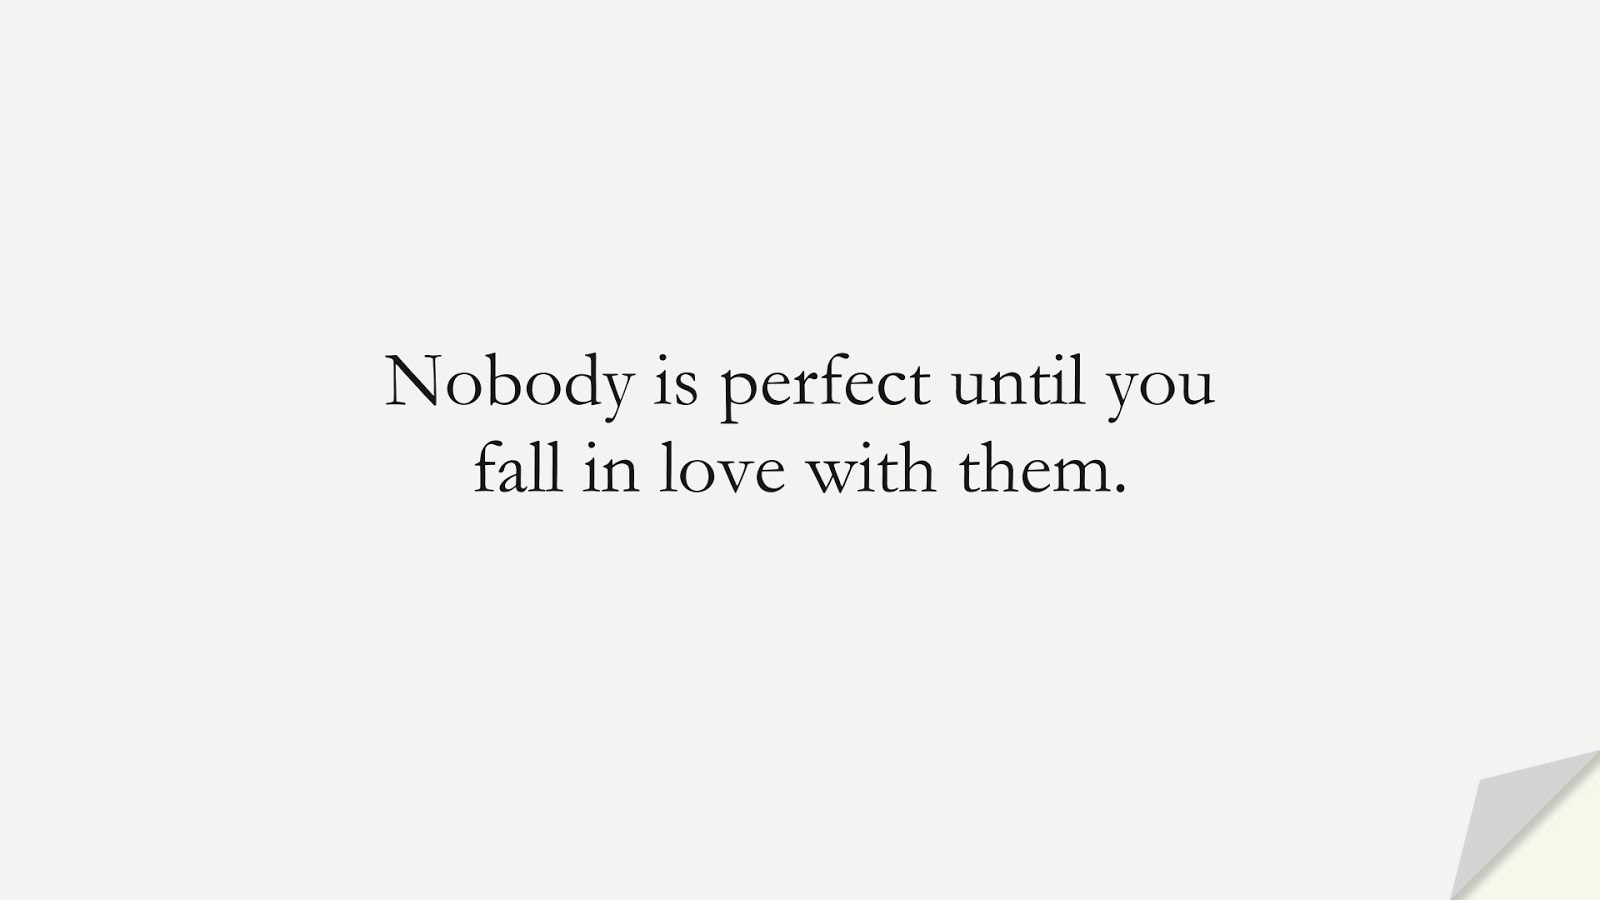 Nobody is perfect until you fall in love with them.FALSE